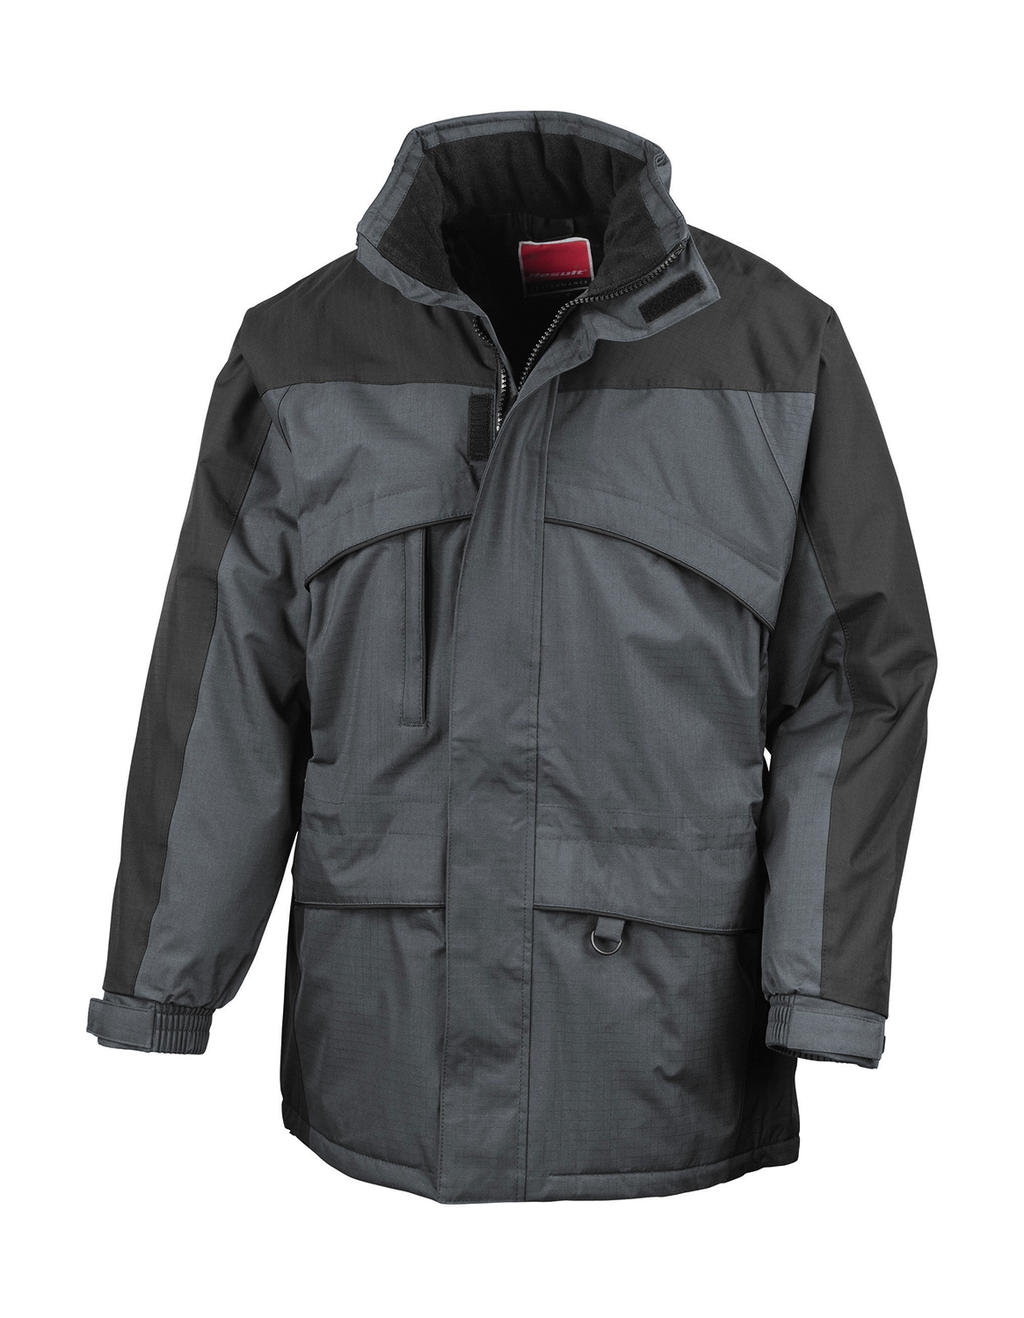 Seneca Hi-Activity Jacket